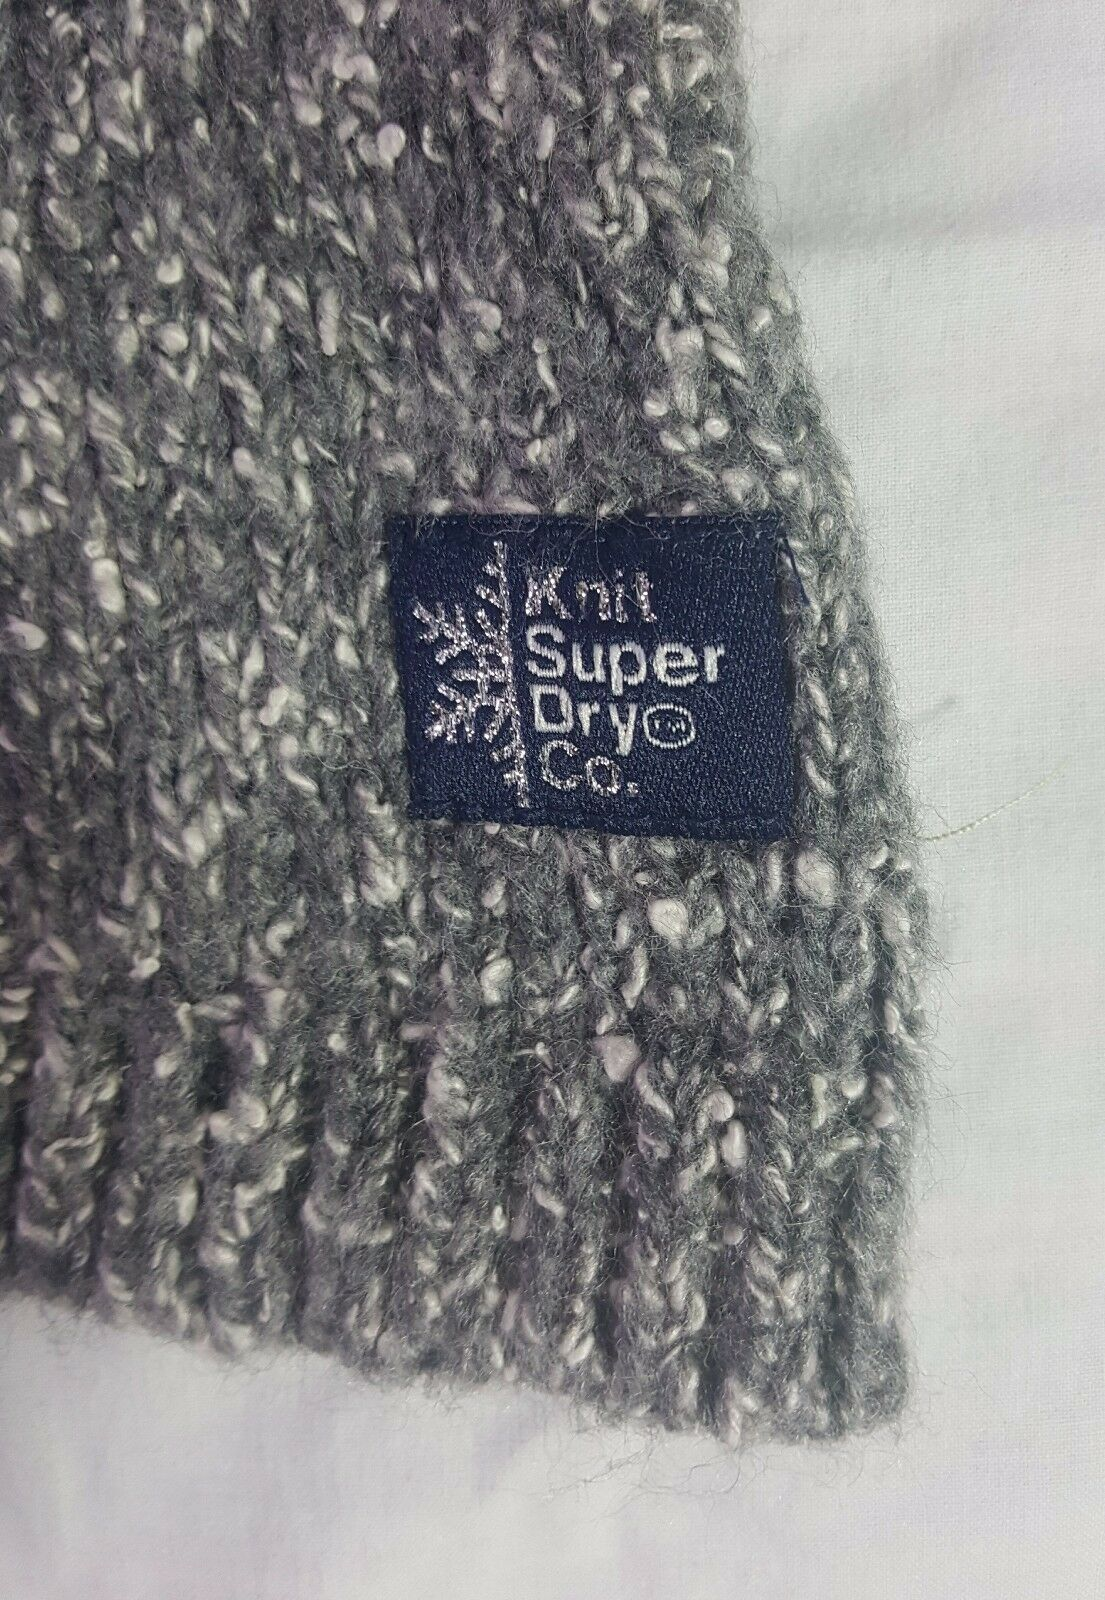 Superdry Knitted  Polar Bear Jumper  Size XS XS XS sweater sweatshirt winter cute f68502